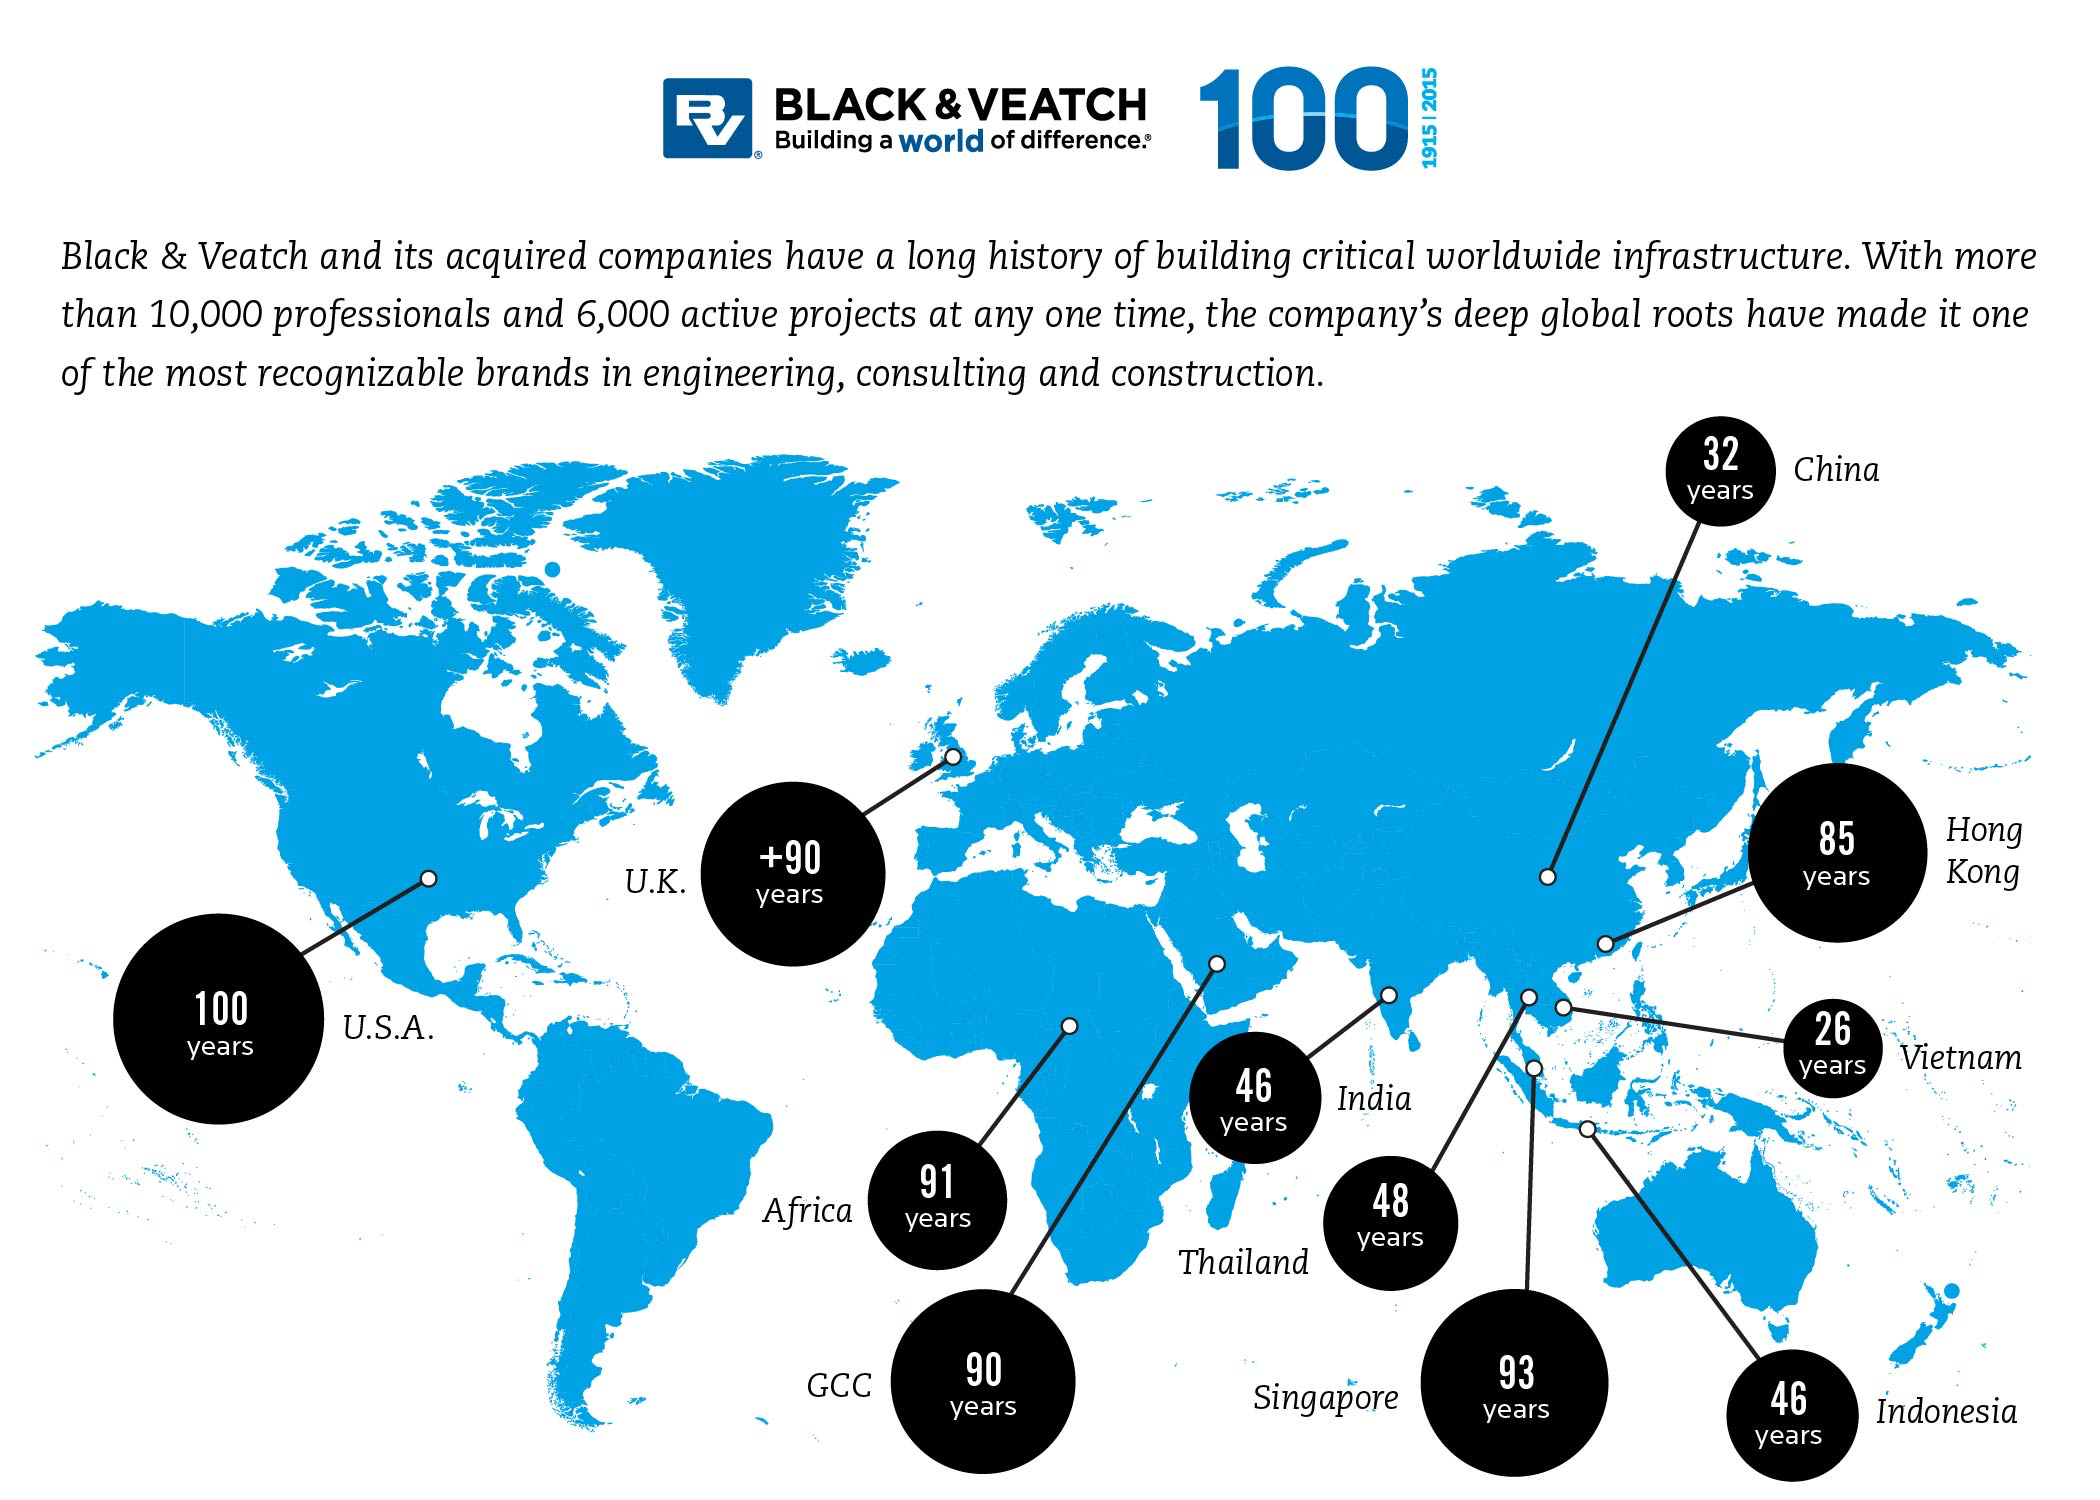 Black & Veatch Celebrates Its 100th Anniversary Across 16 Time Zones